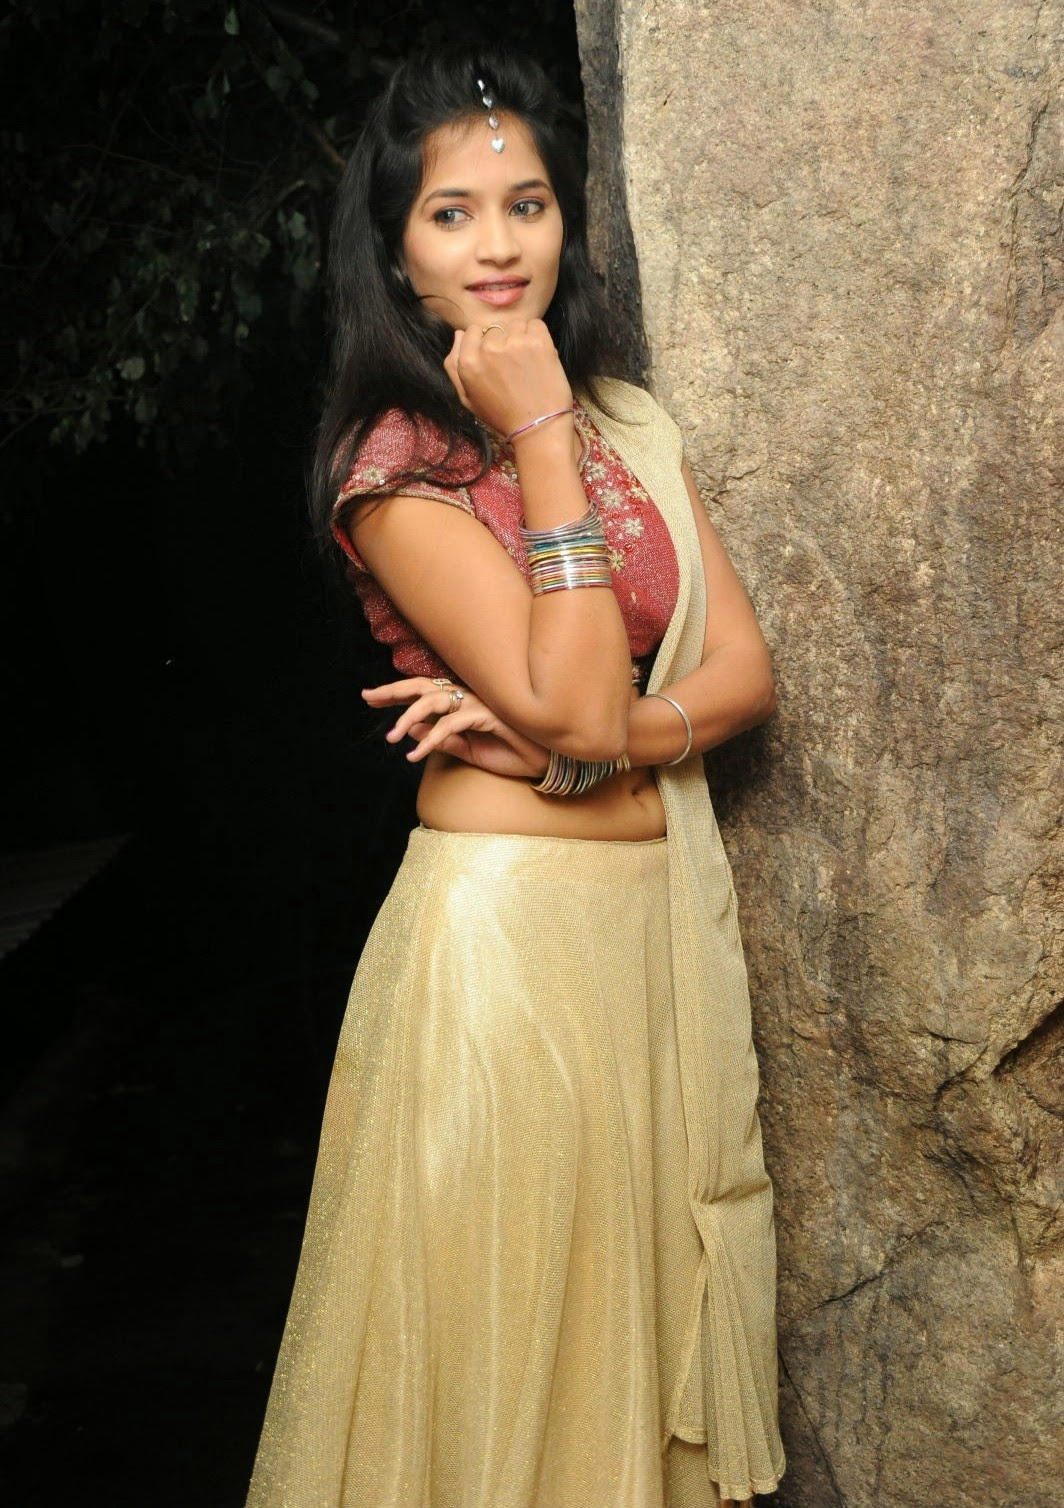 hot bangles, hot hands, sexy hands,anwika hot navel, anwika sexy,sexy anwika navel, telugu girls, sexy south girls